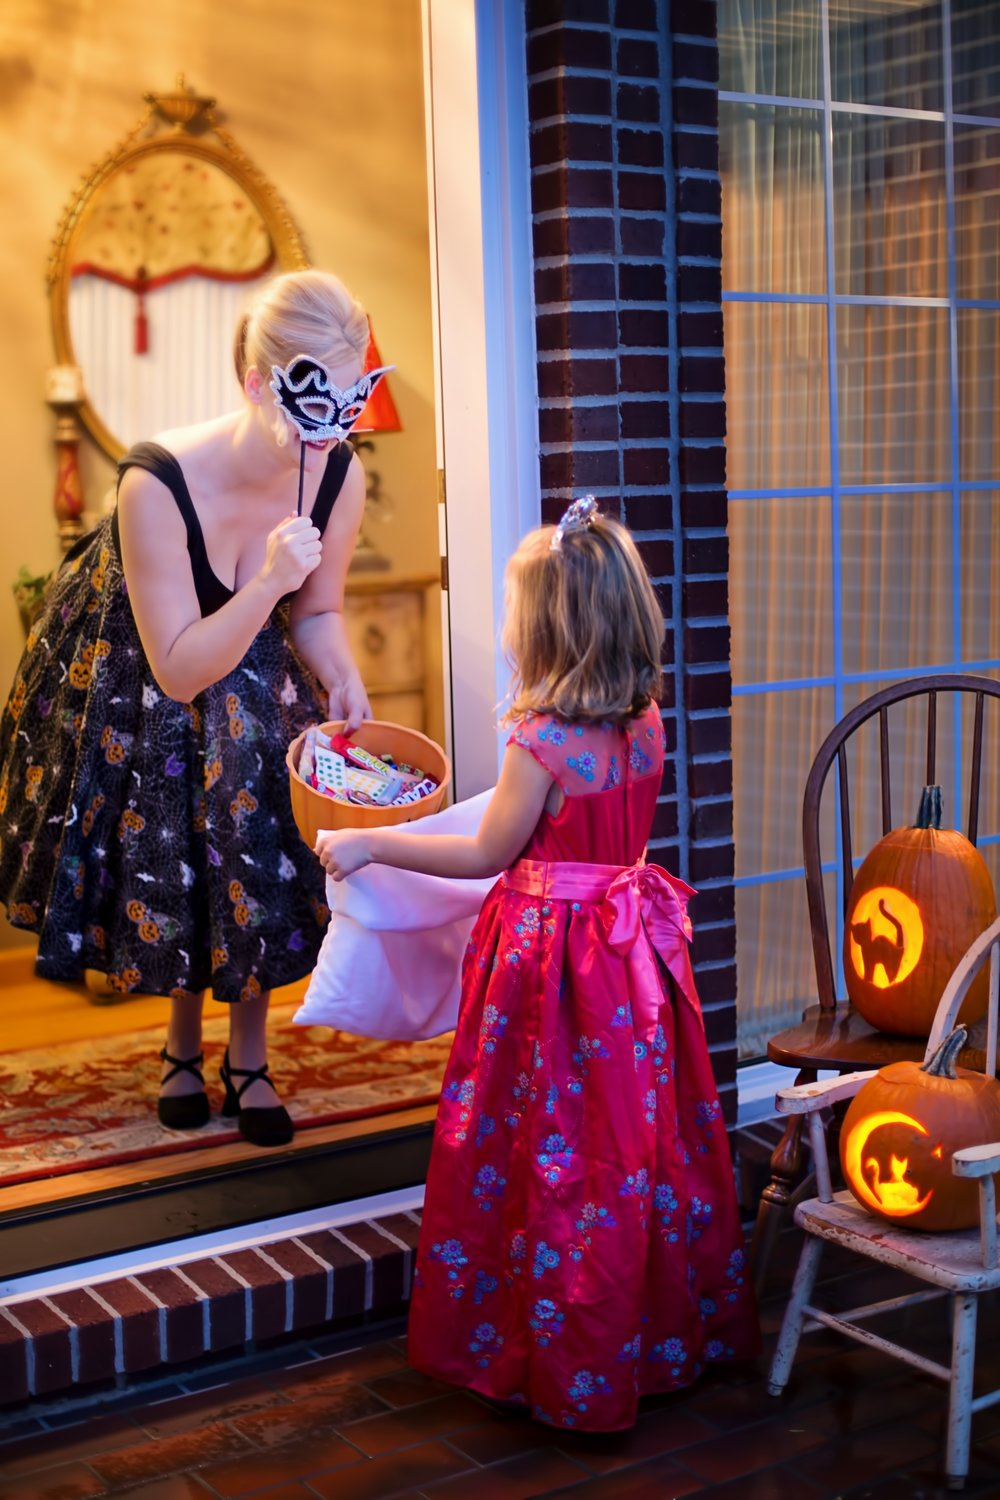 Spoiler Alert - I will not be wearing a dress and holding up a mask. I will be watching to make sure one of my cats doesn't make a run for it when I open the door.